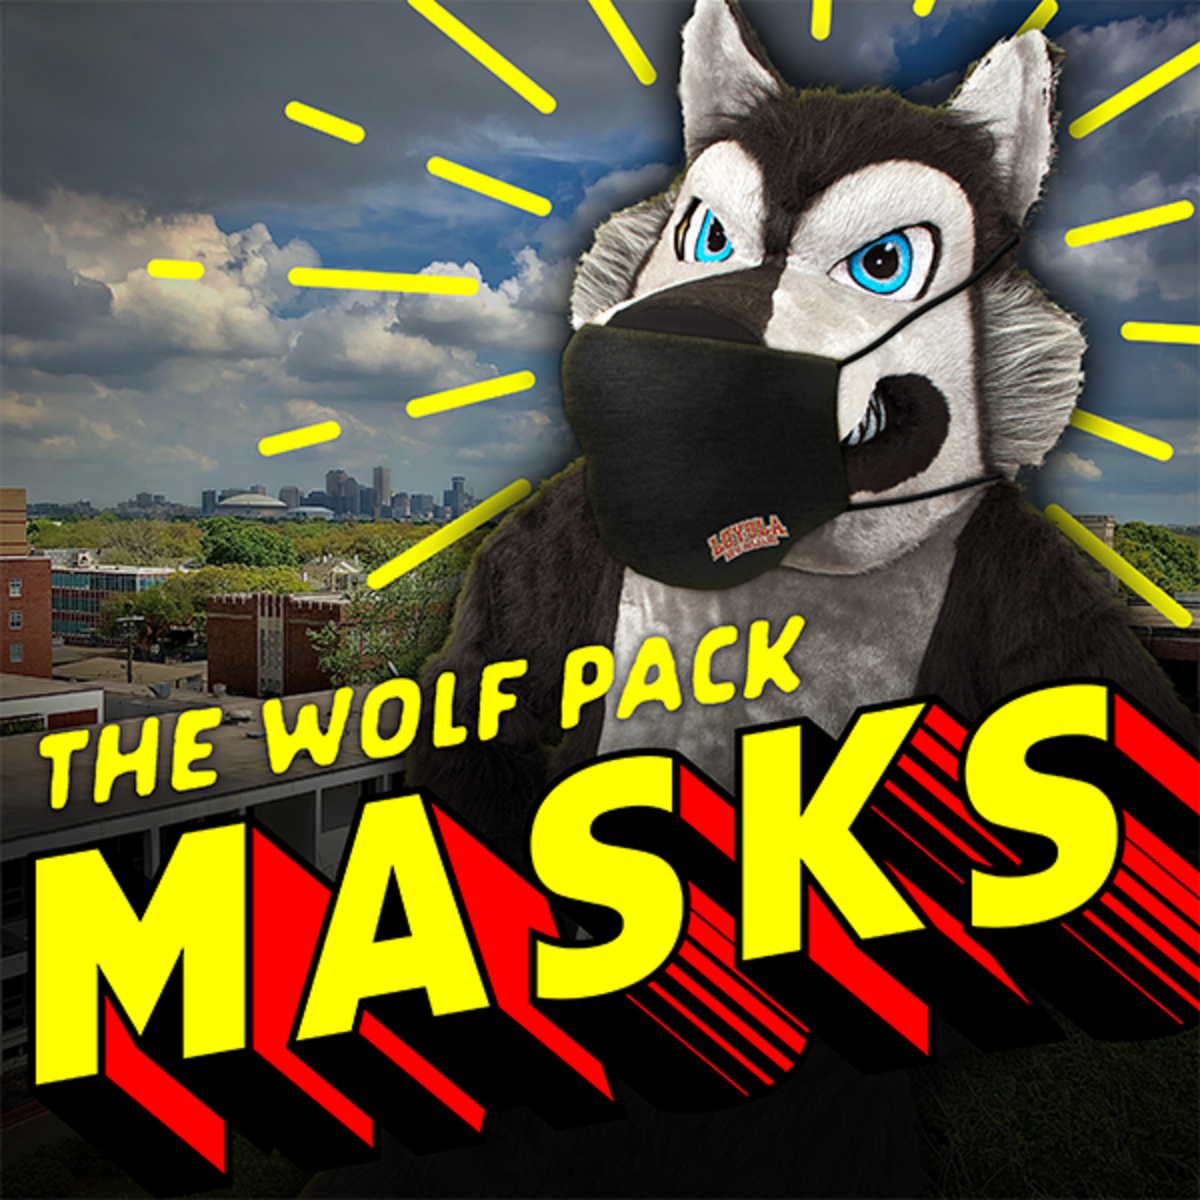 The Wolf Pack Masks